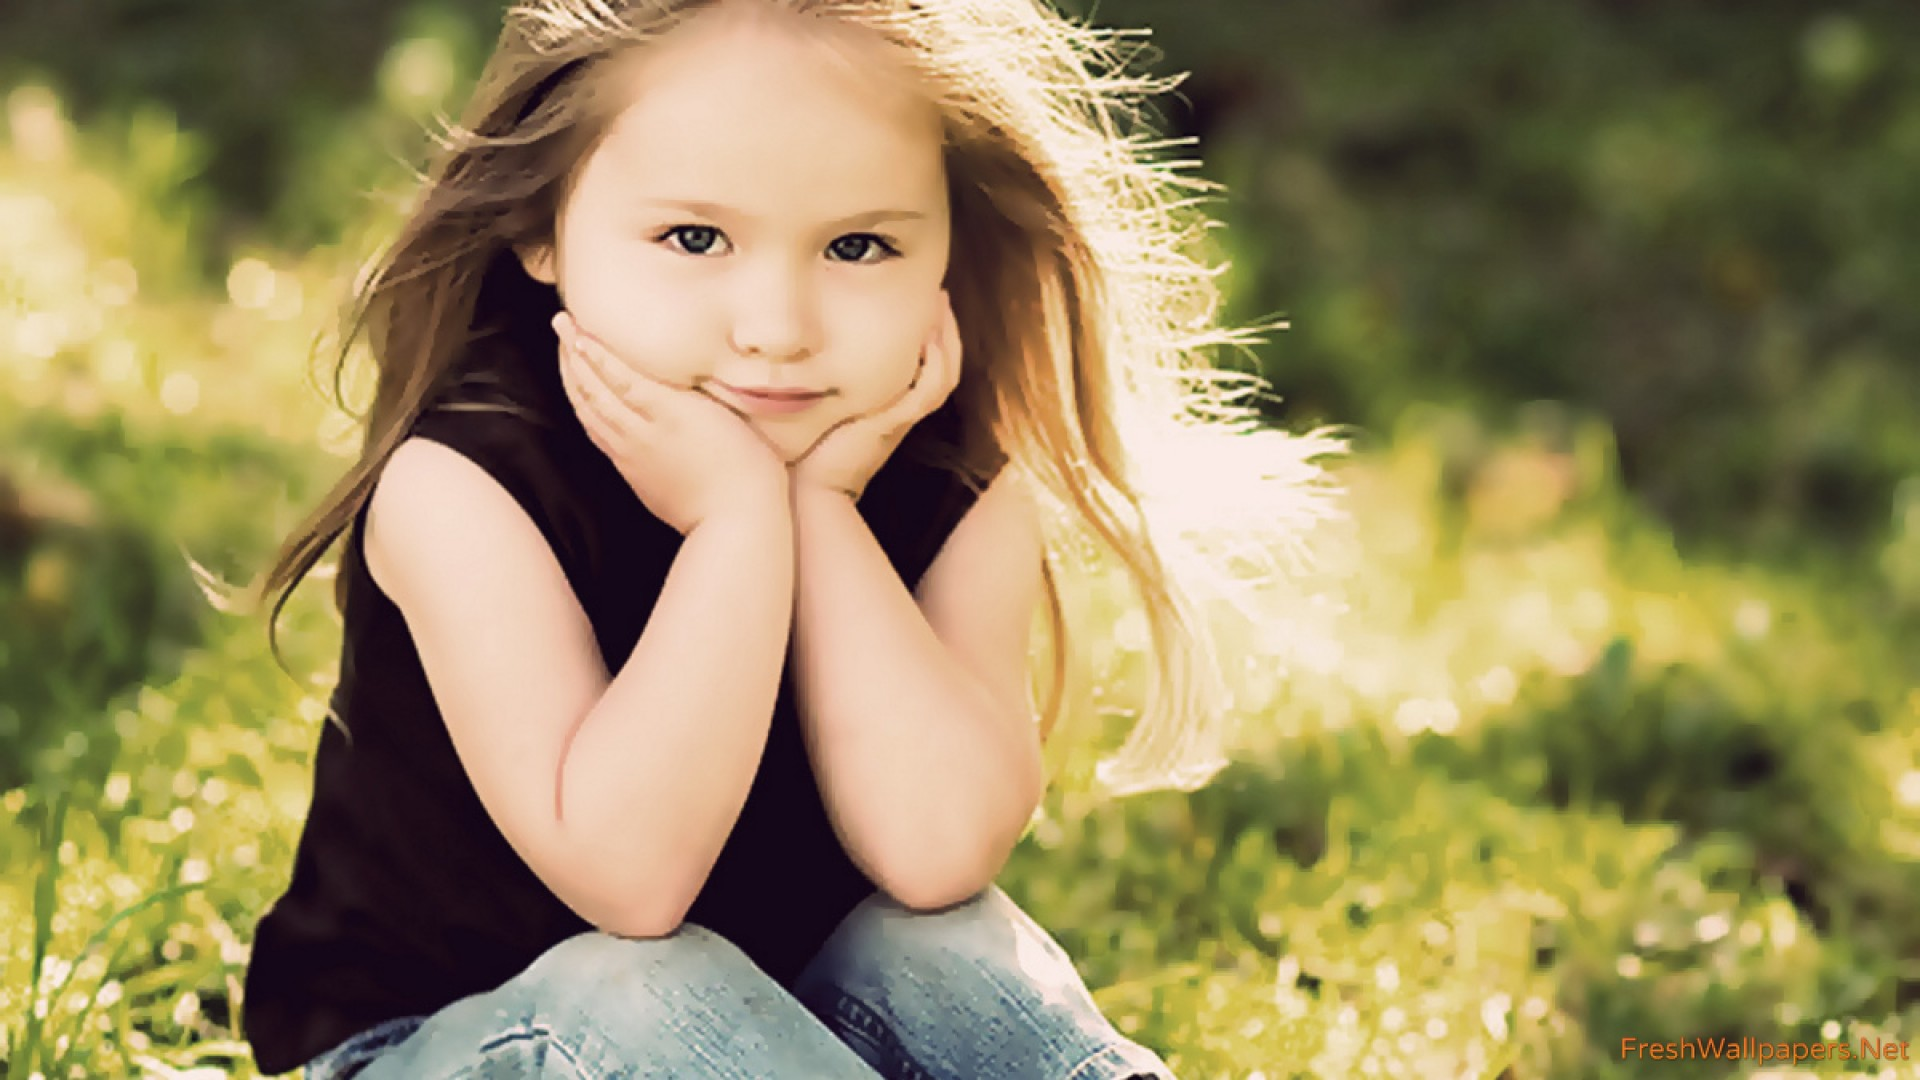 Sad Baby Girl Wallpaper With Quotes Cute Little Girl Wallpapers Freshwallpapers Hd Wallpapers